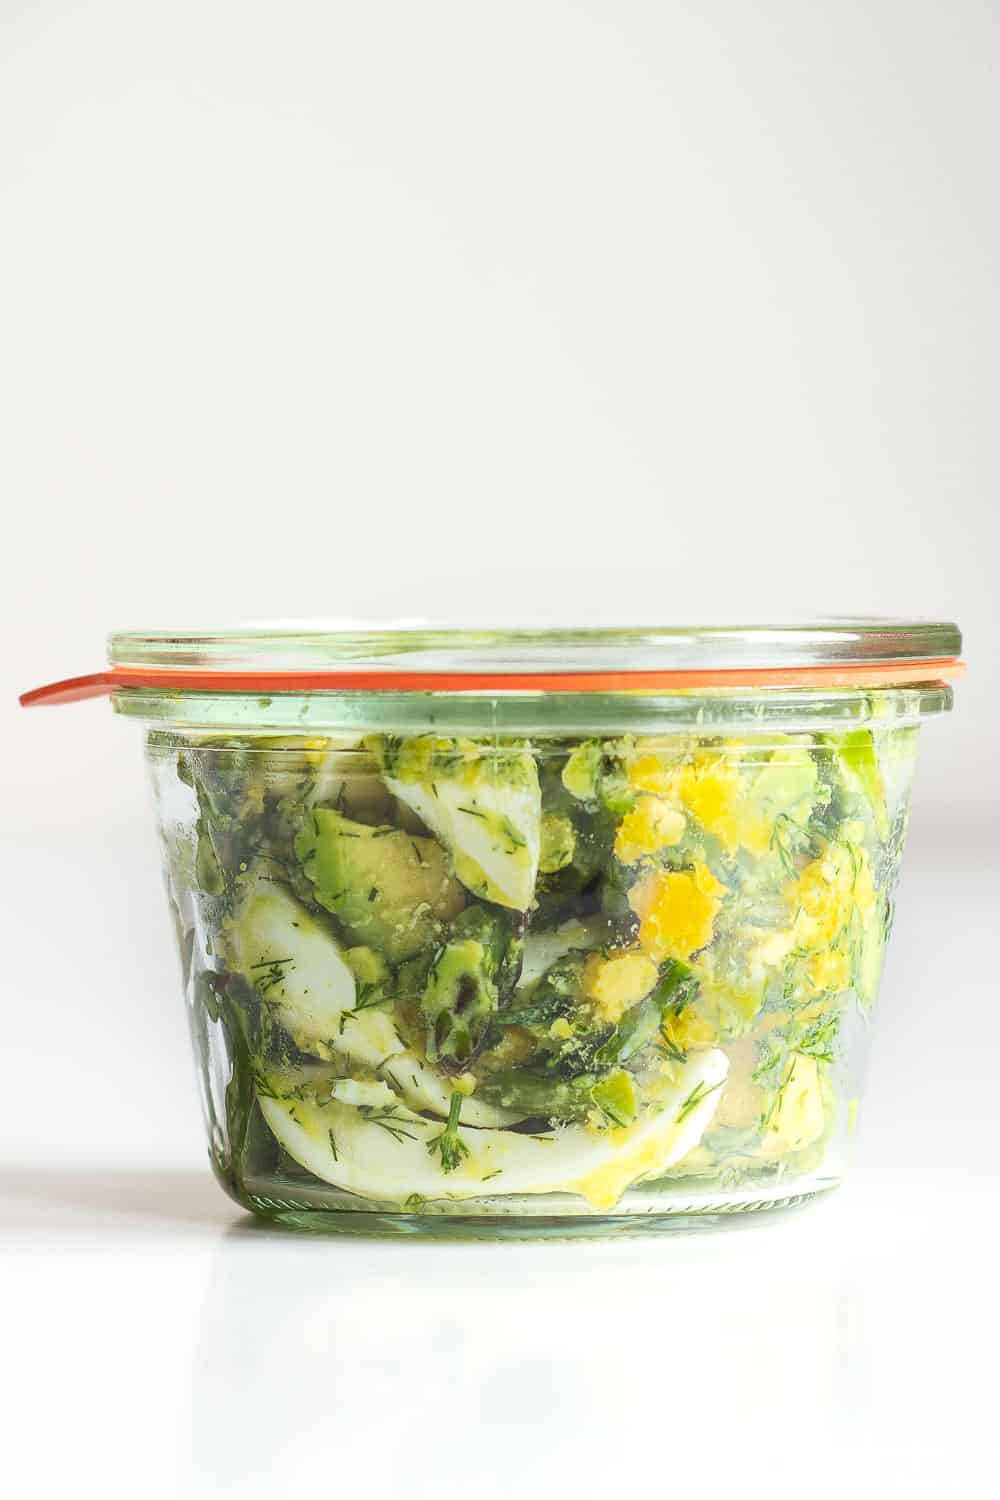 Avocado Egg Salad in a meal prep glass container with lid on.